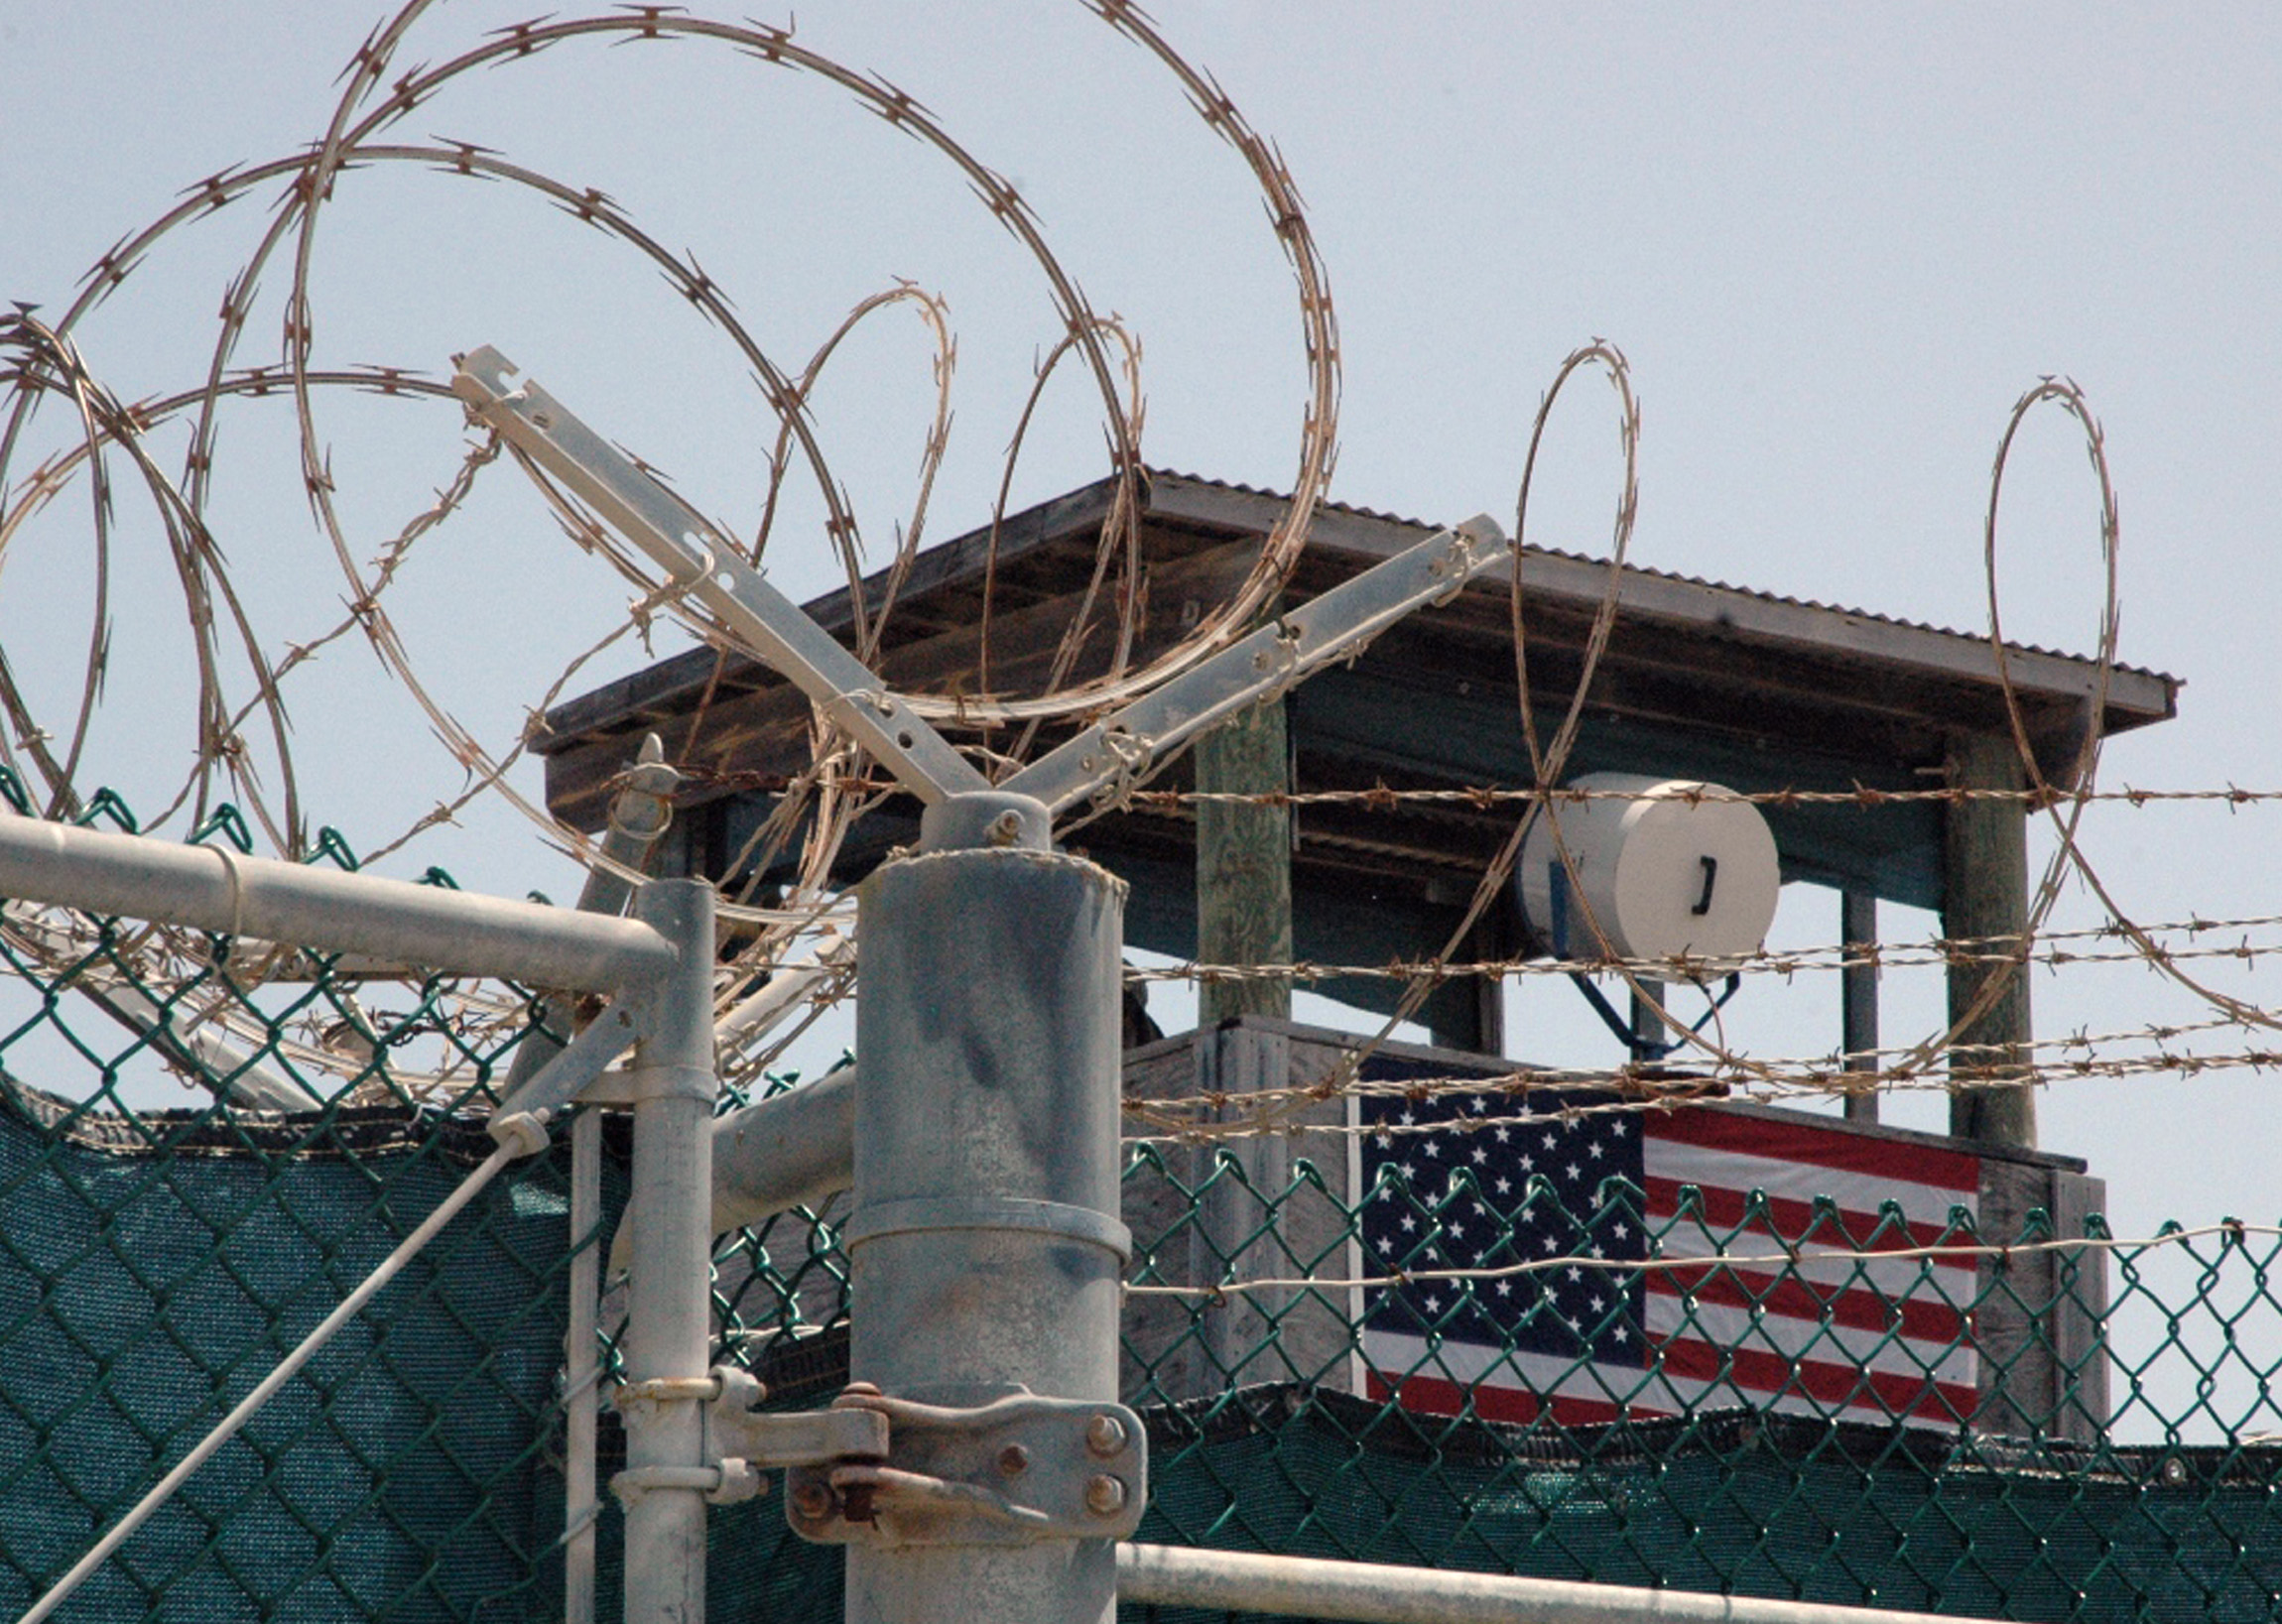 A Guantanamo Detainee's Perspective - Photo courtesy of Reuters/Mandel Ngan/Poo